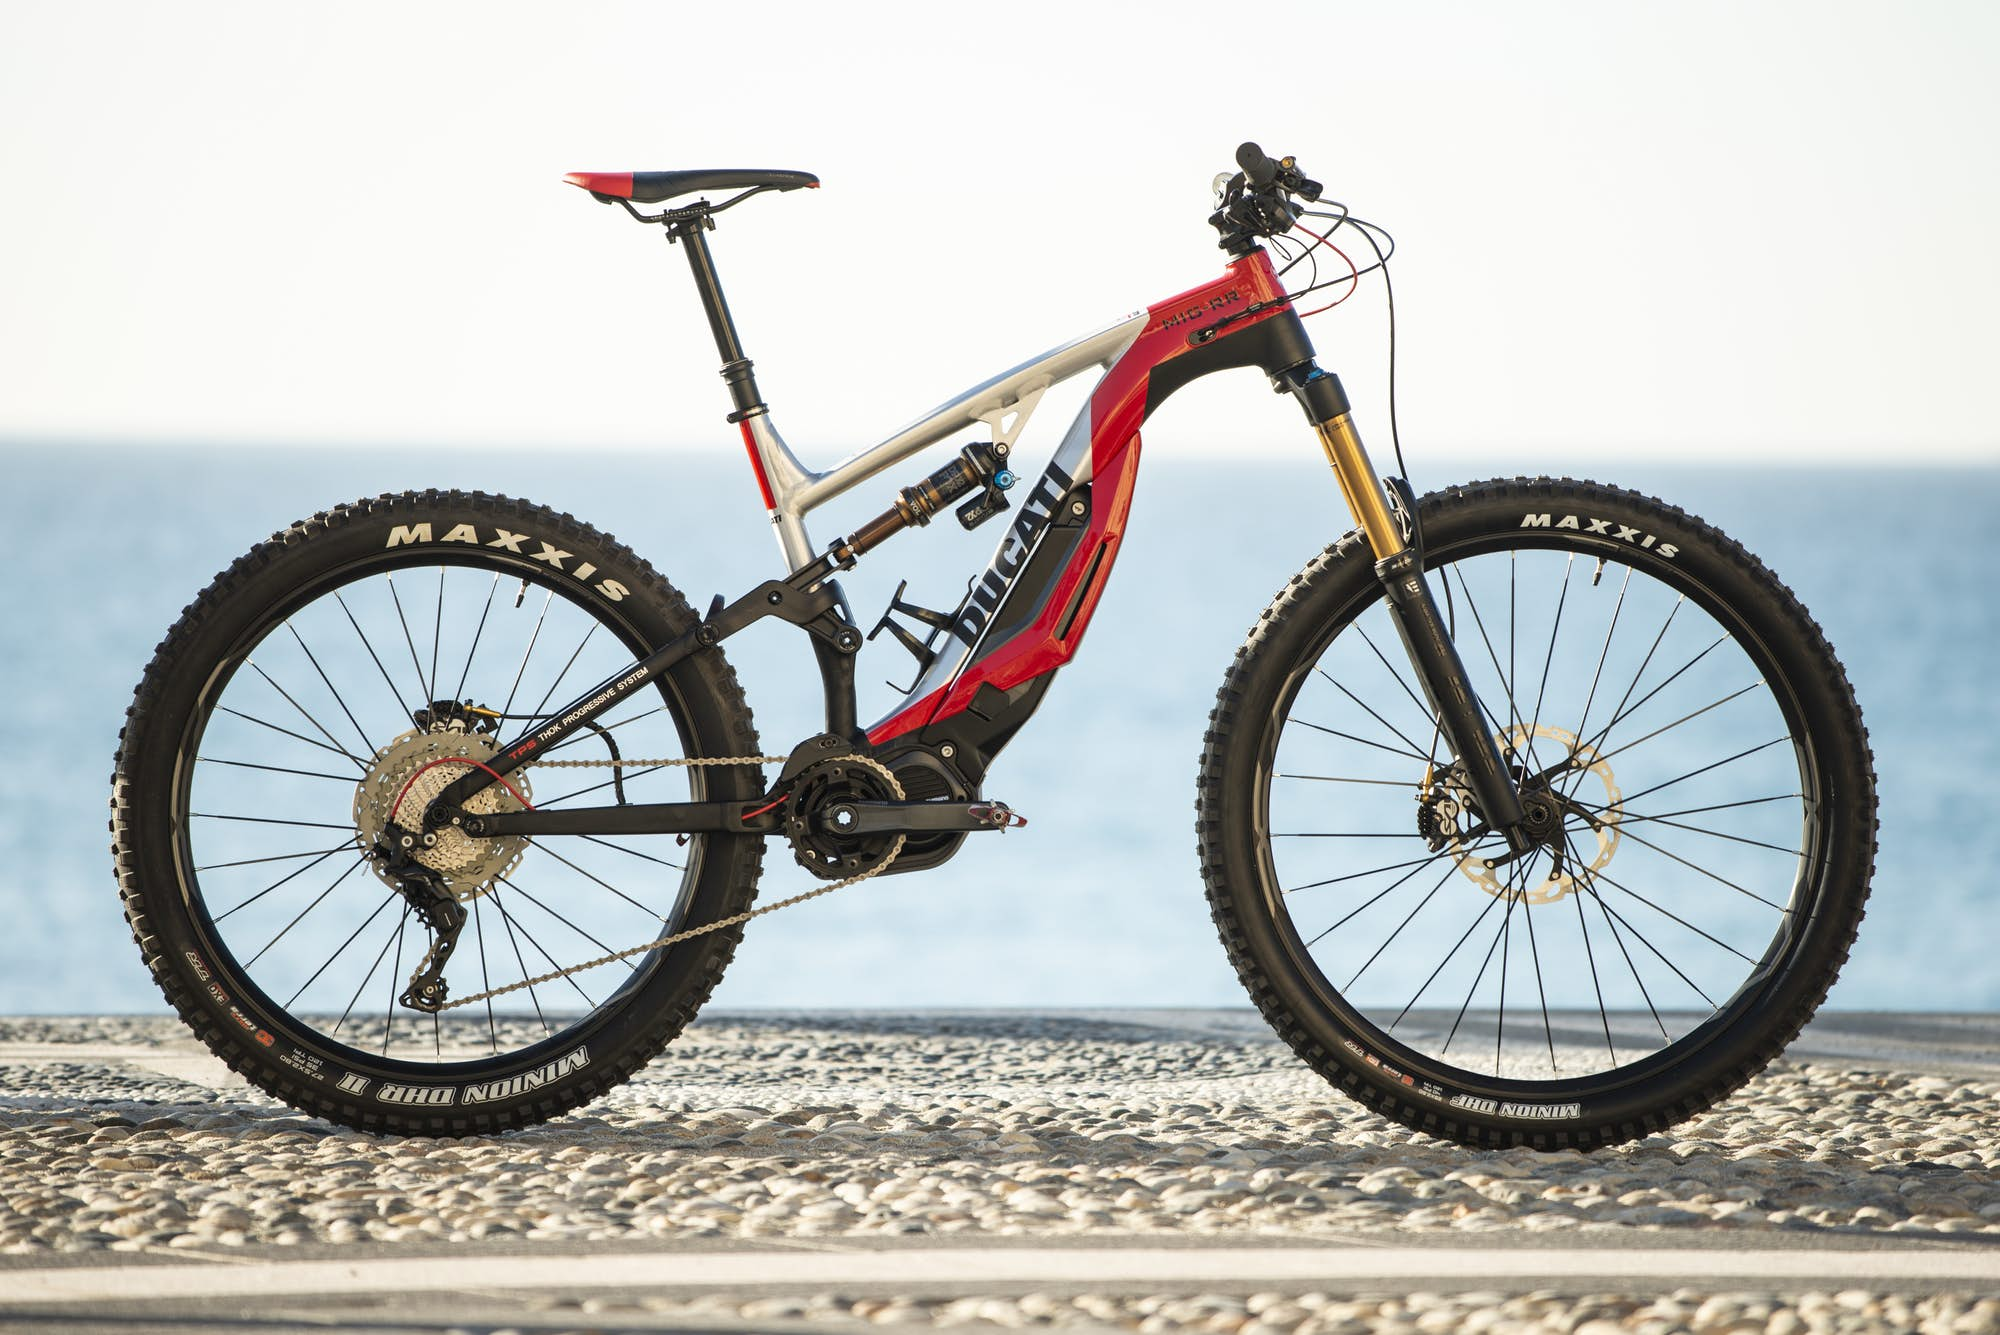 ducati mig-rr electric mountain bike